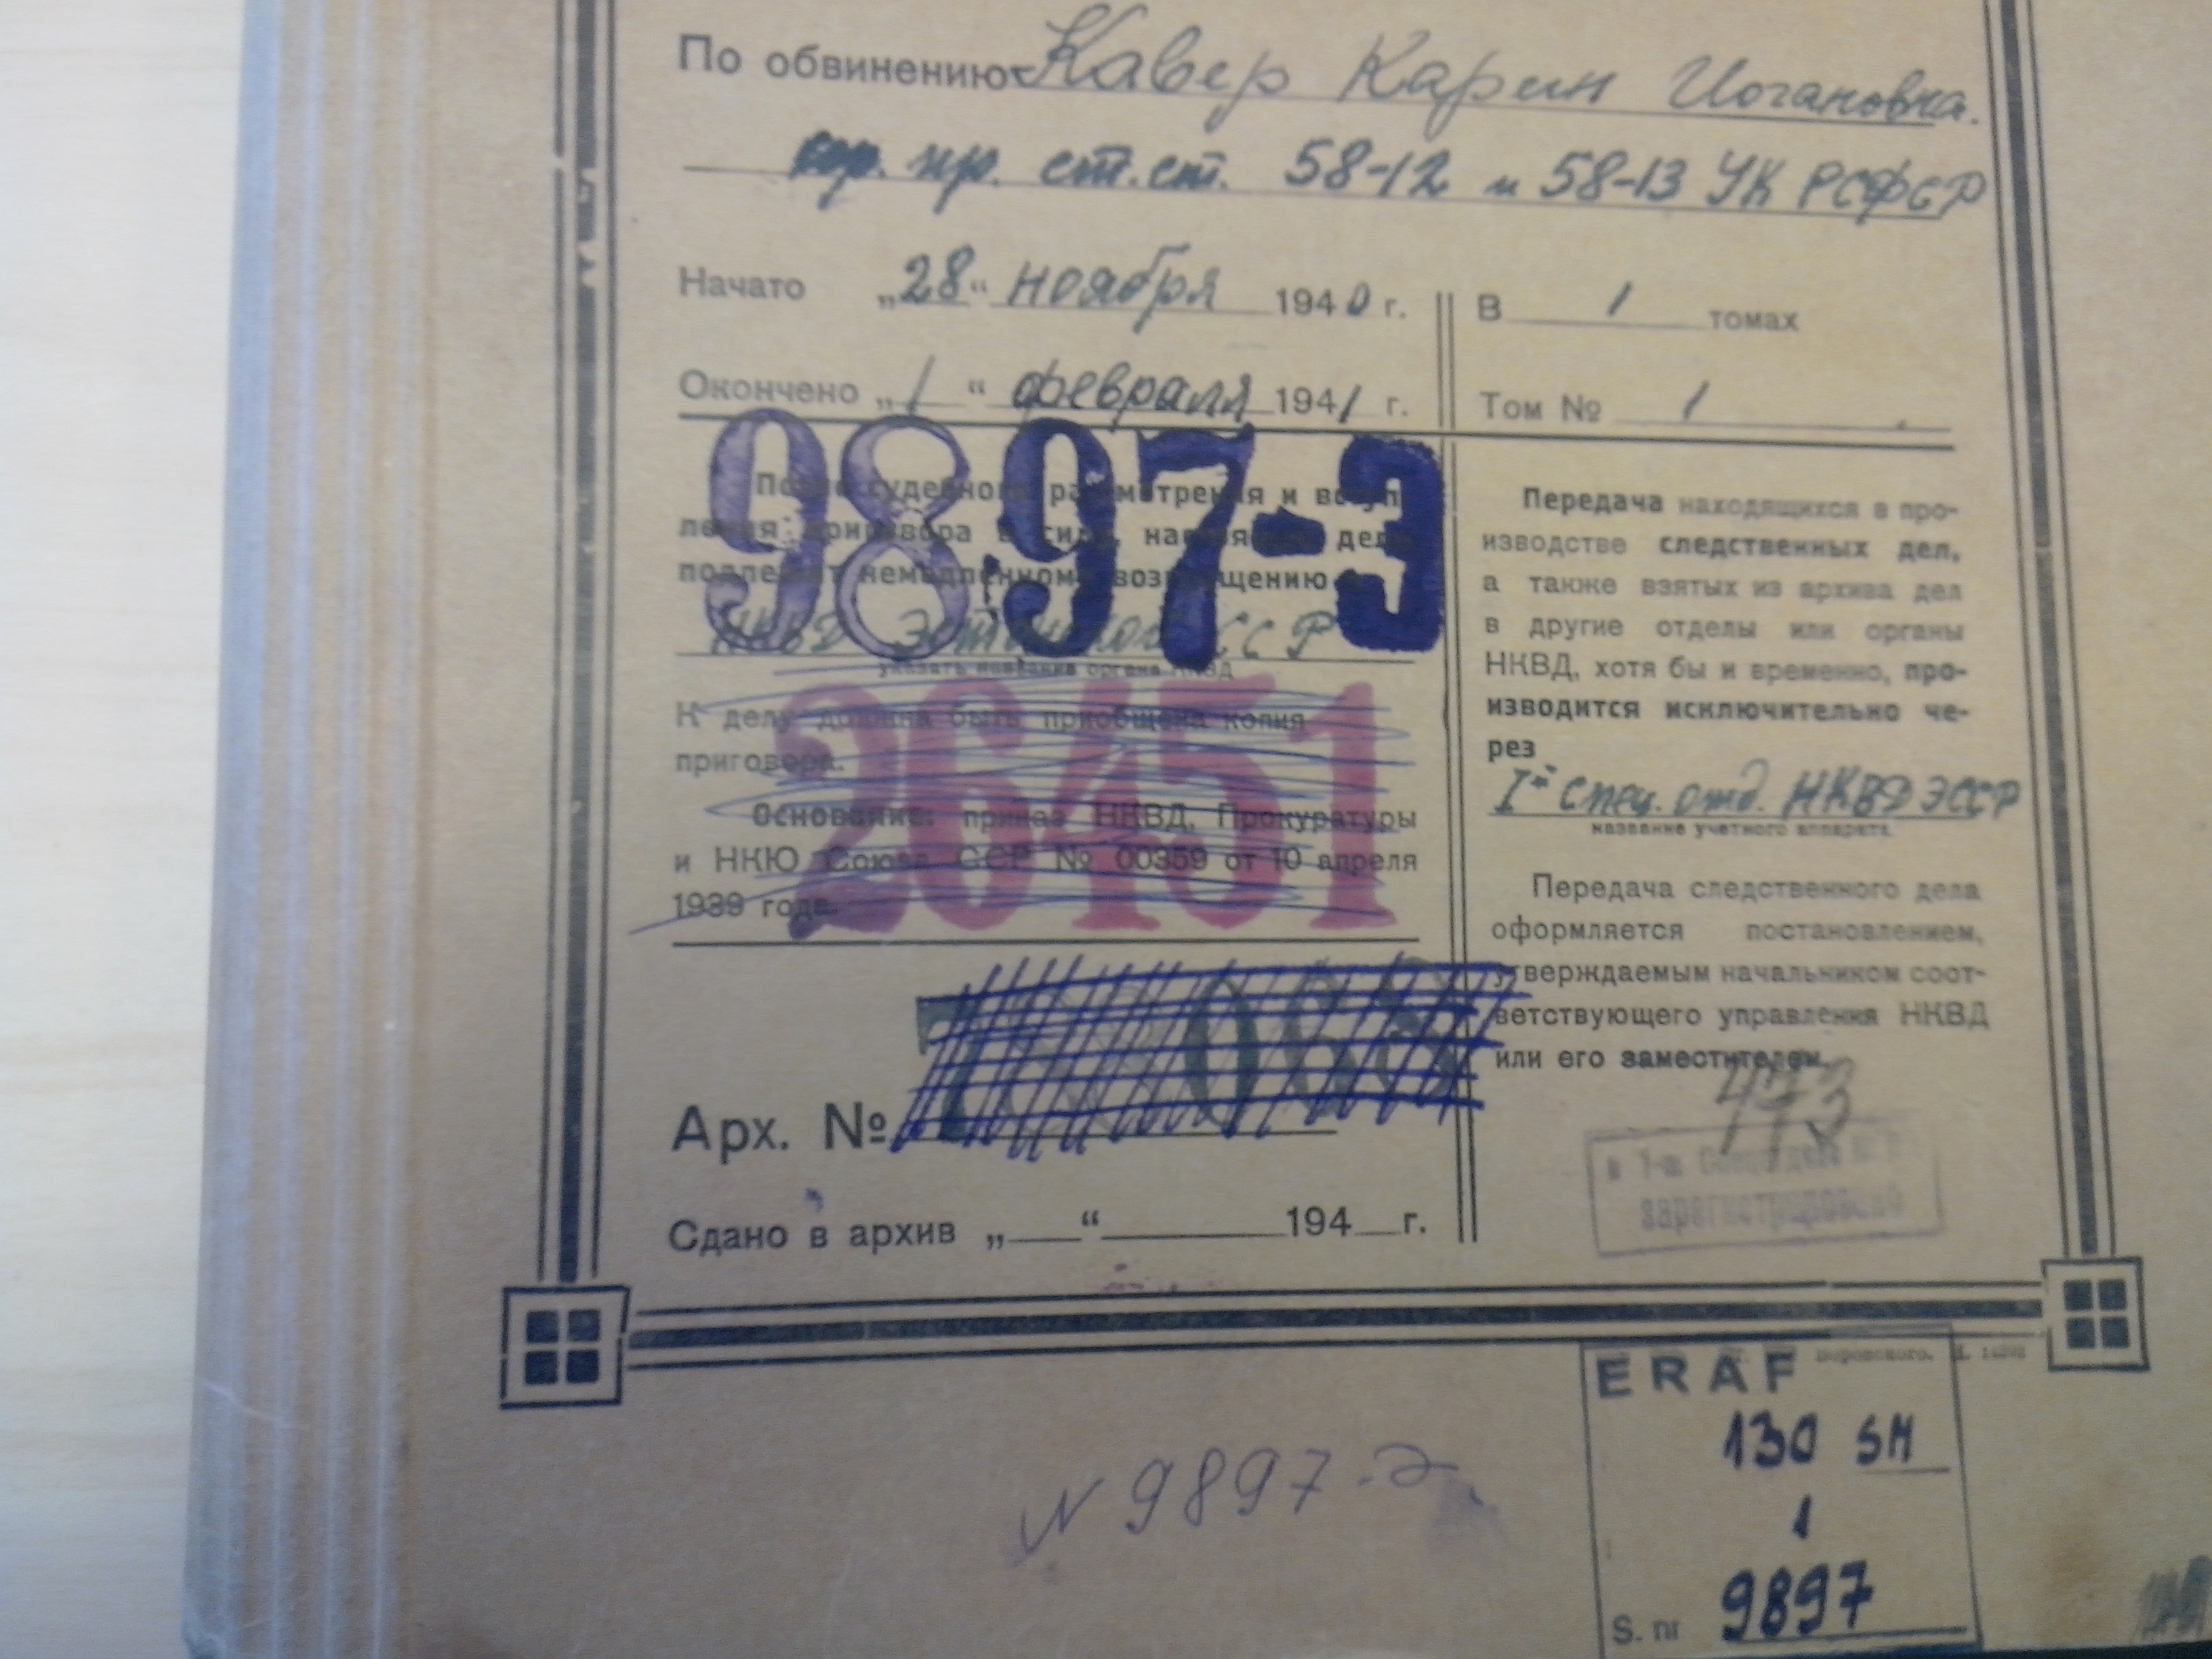 A typical cover of a case file from the collection.